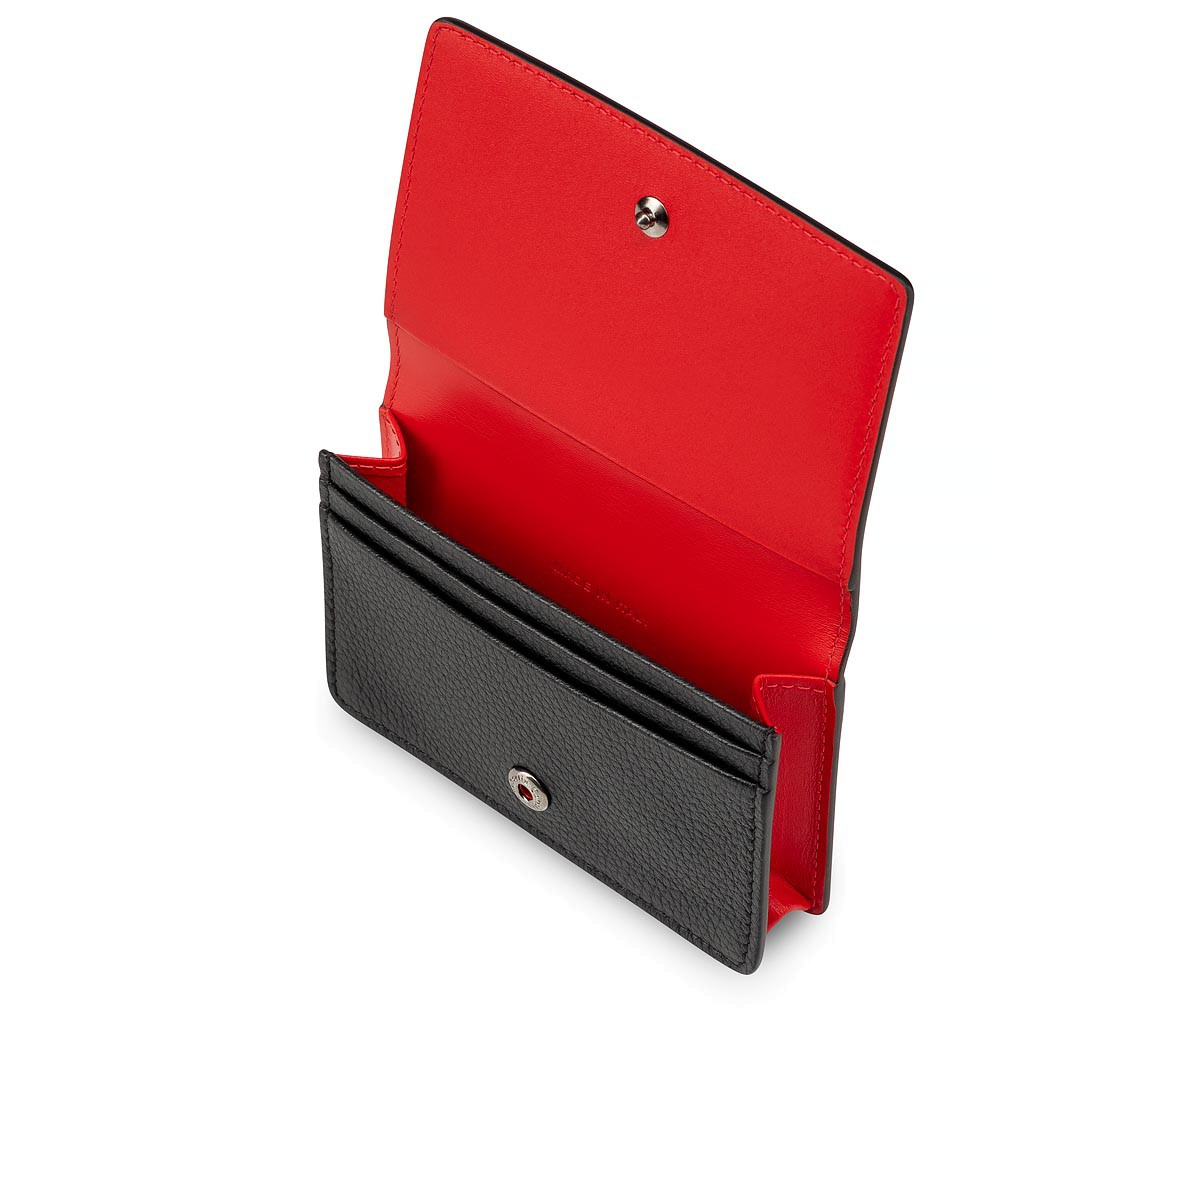 スモールレザーグッズ - Loubeka Business Card Case - Christian Louboutin